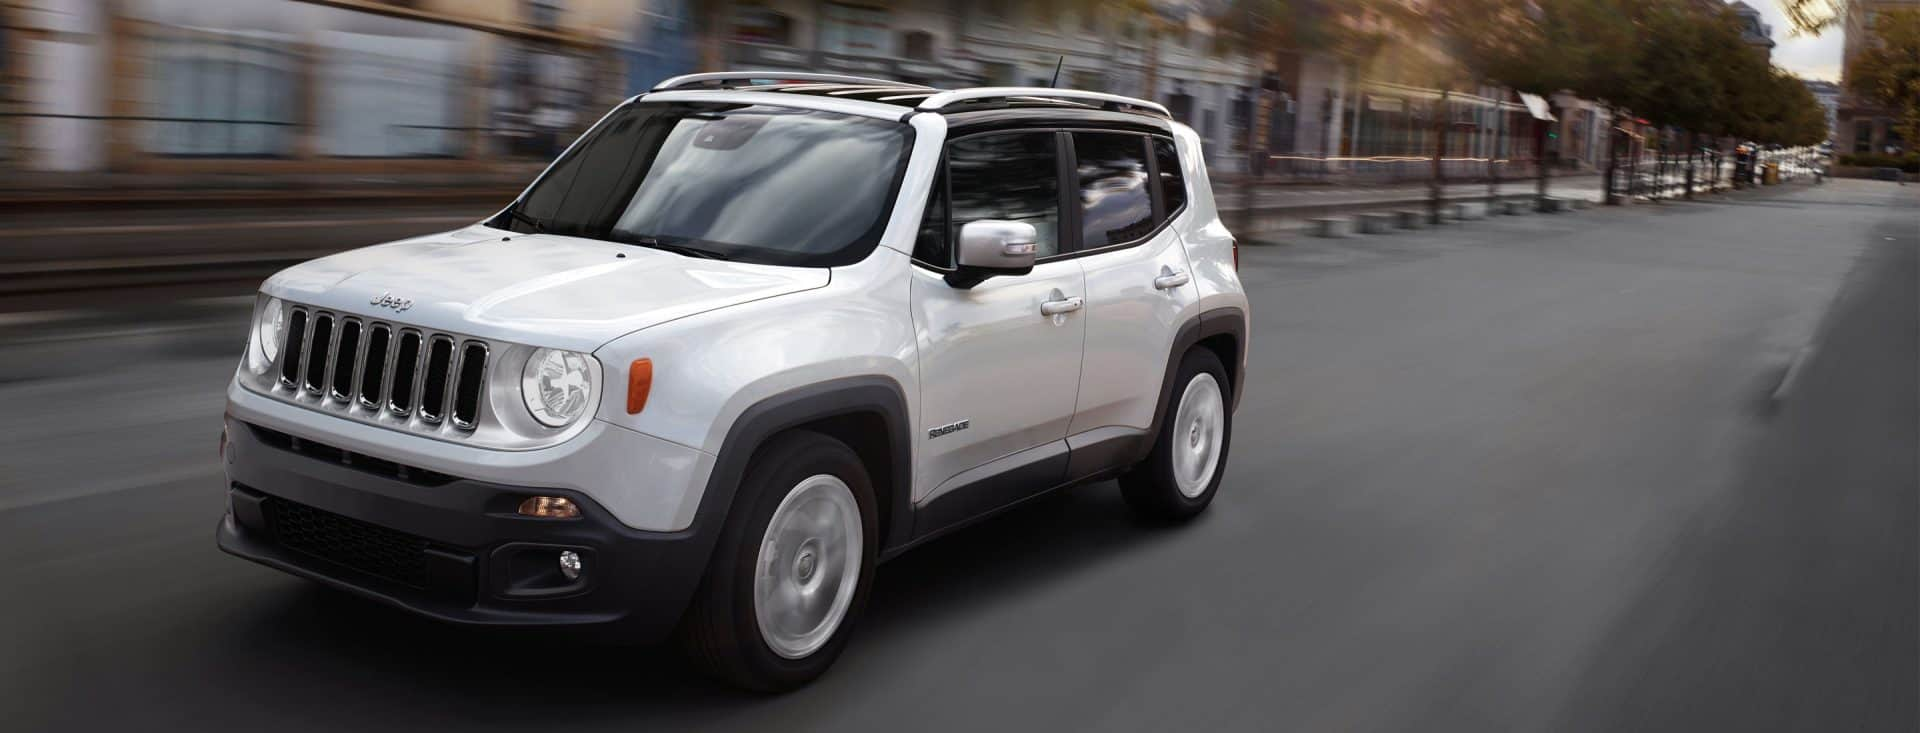 2018-Jeep-Renegade-VLP-Hero-Limited